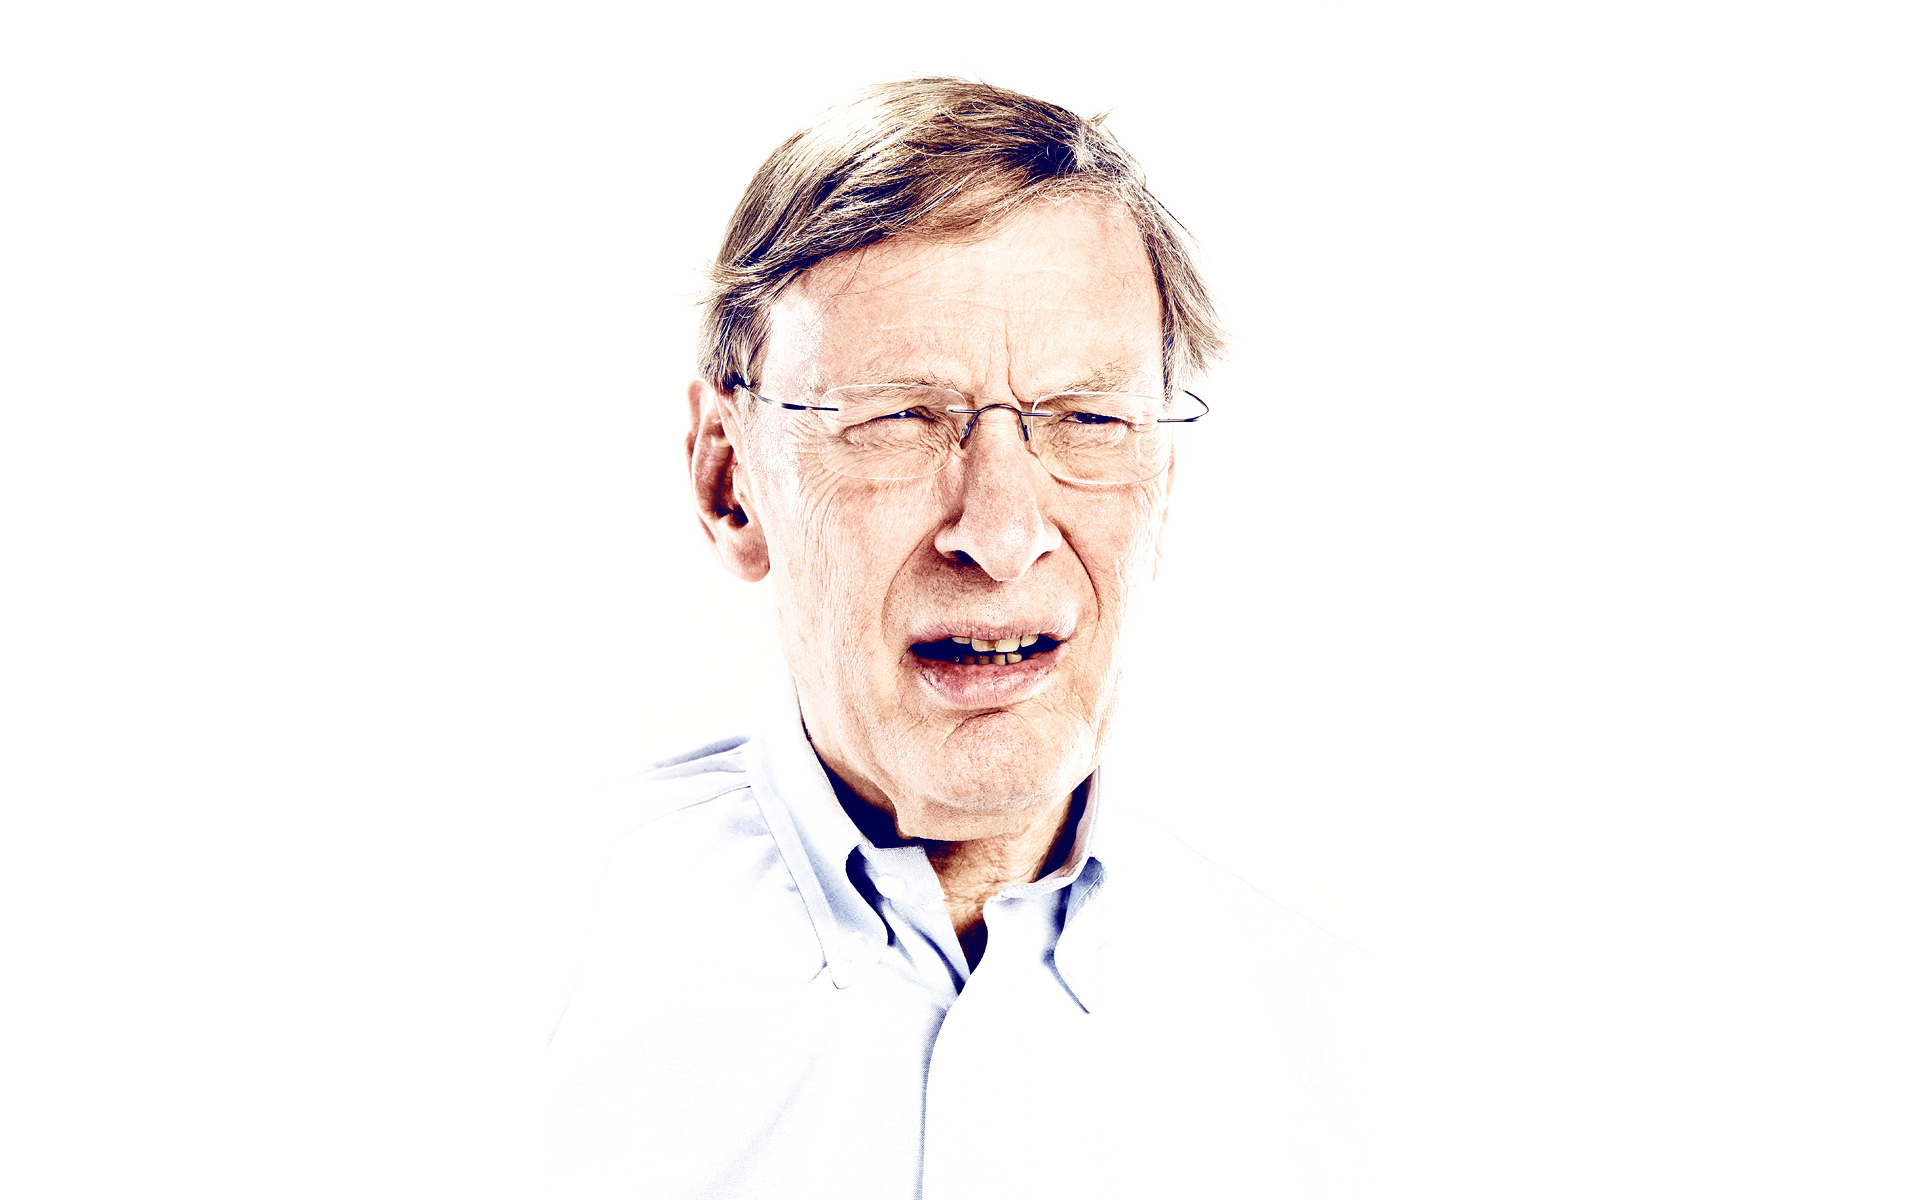 Bud Selig photographed for ESPN Magazine by Blair Bunting